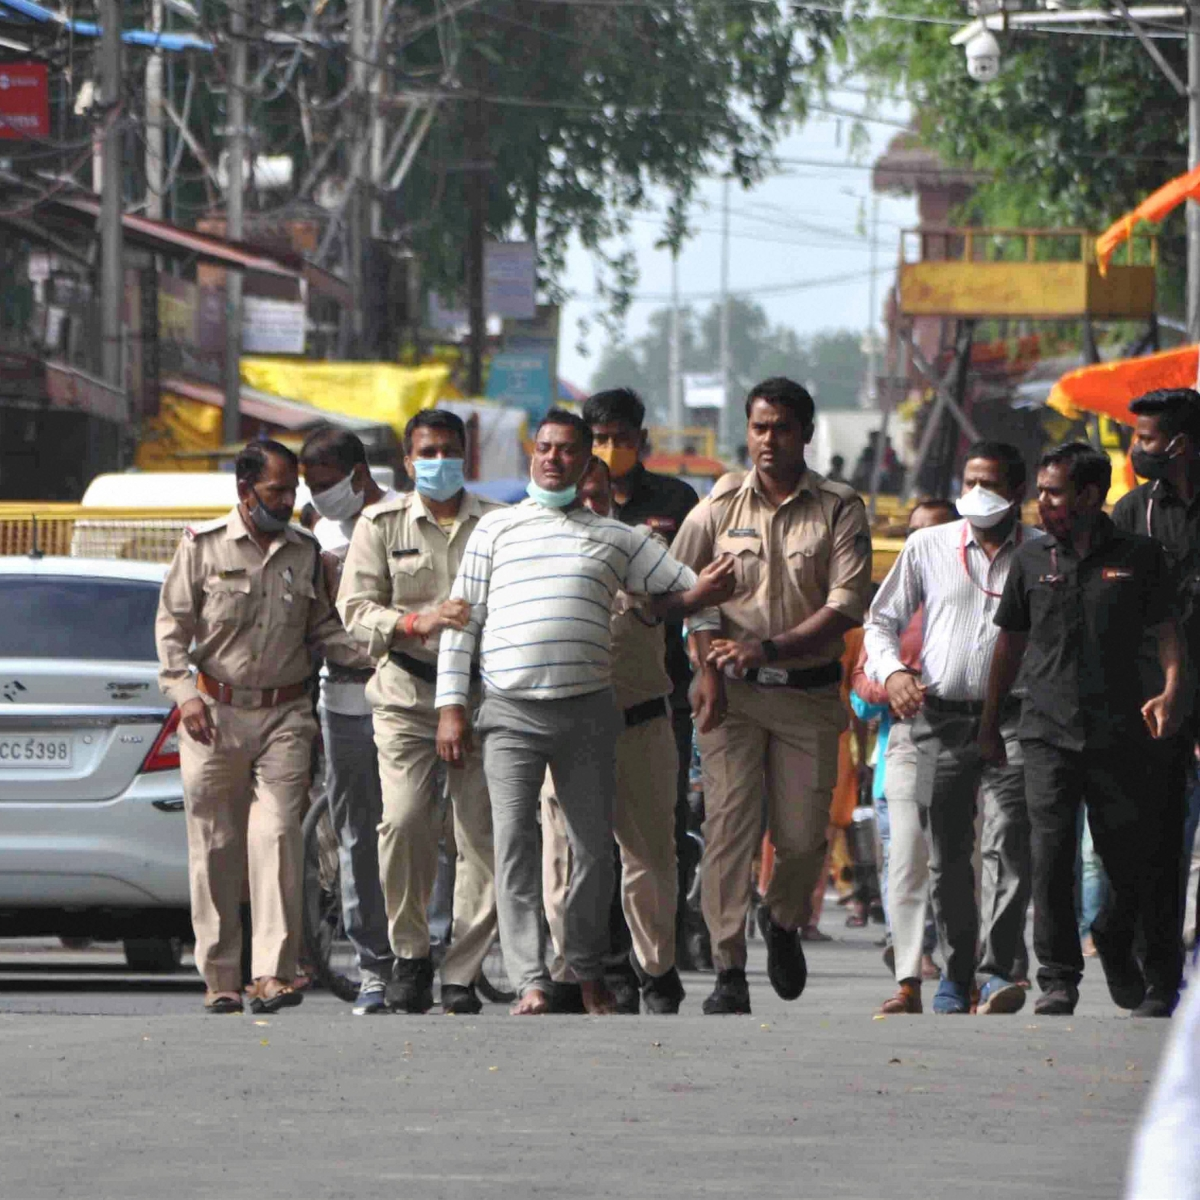 Uttar Pradesh's dreaded gangster Vikas Dubey, on the run, is 'nabbed' in MP Temple